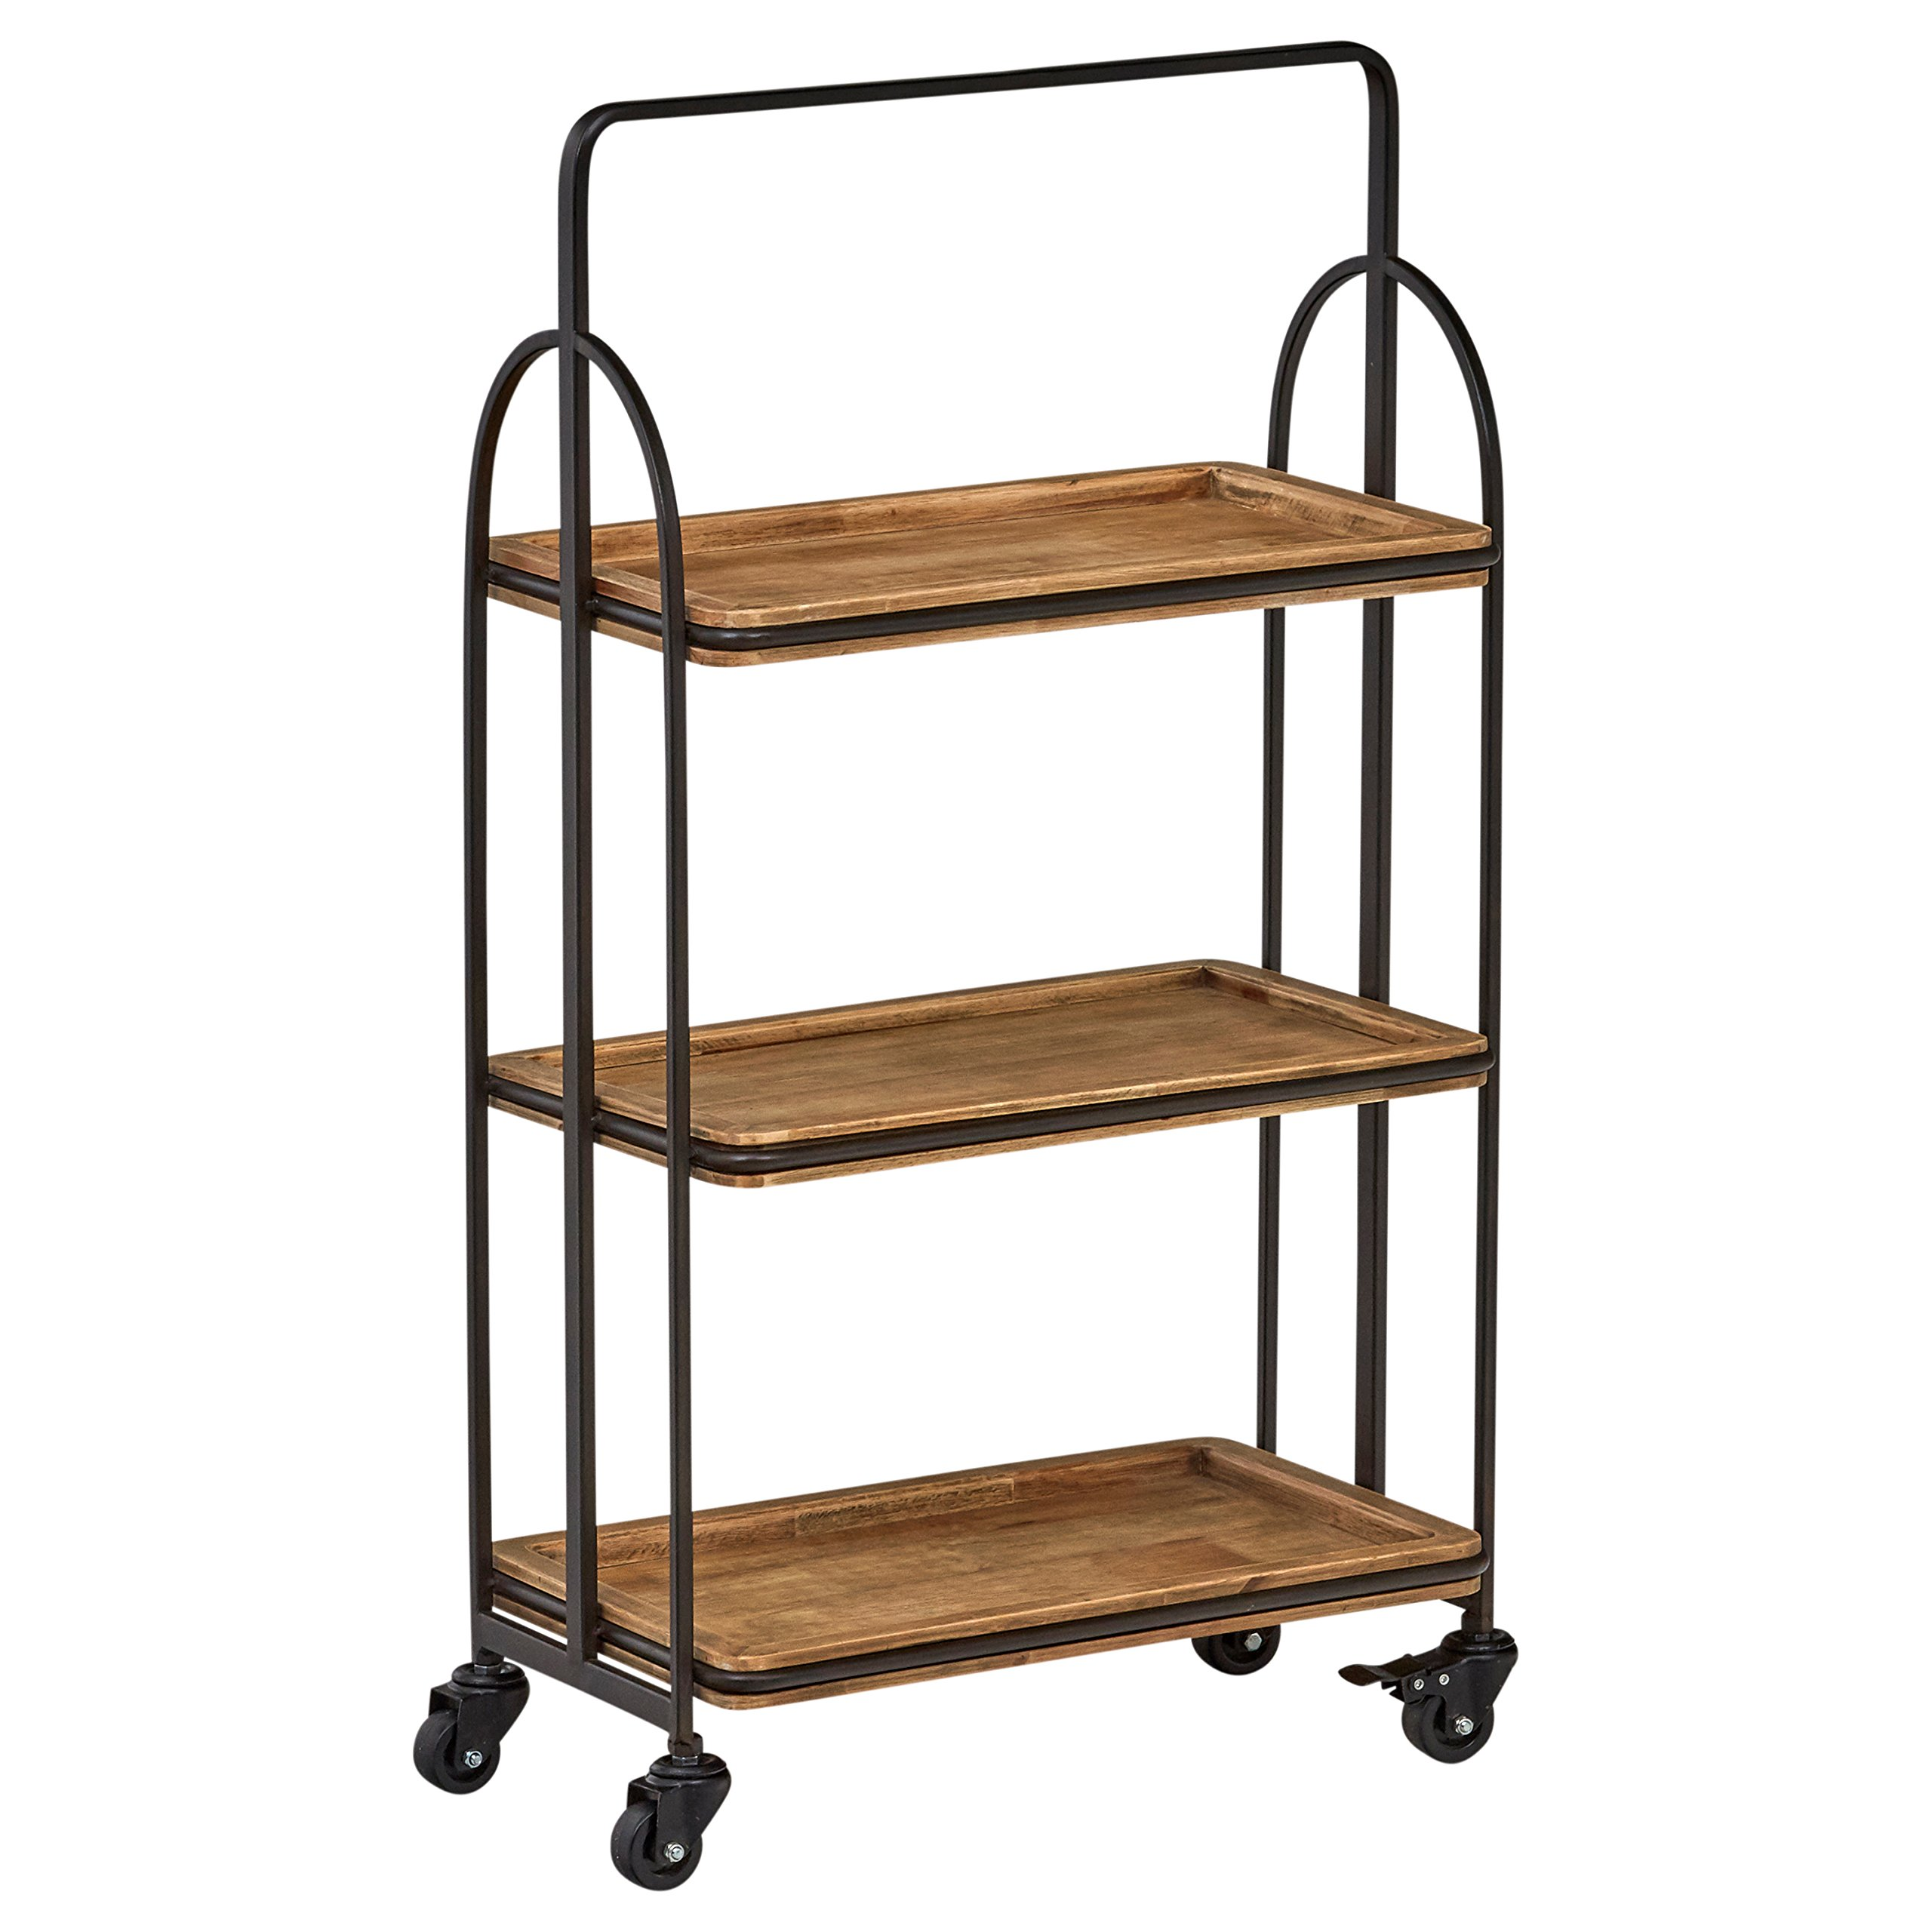 Stone & Beam Industrial Rustic Arced Rolling Wood Metal Kitchen Bar Cart Island with Wheels, 37.2 Inch Height, Storage, Brown, Black by Stone & Beam